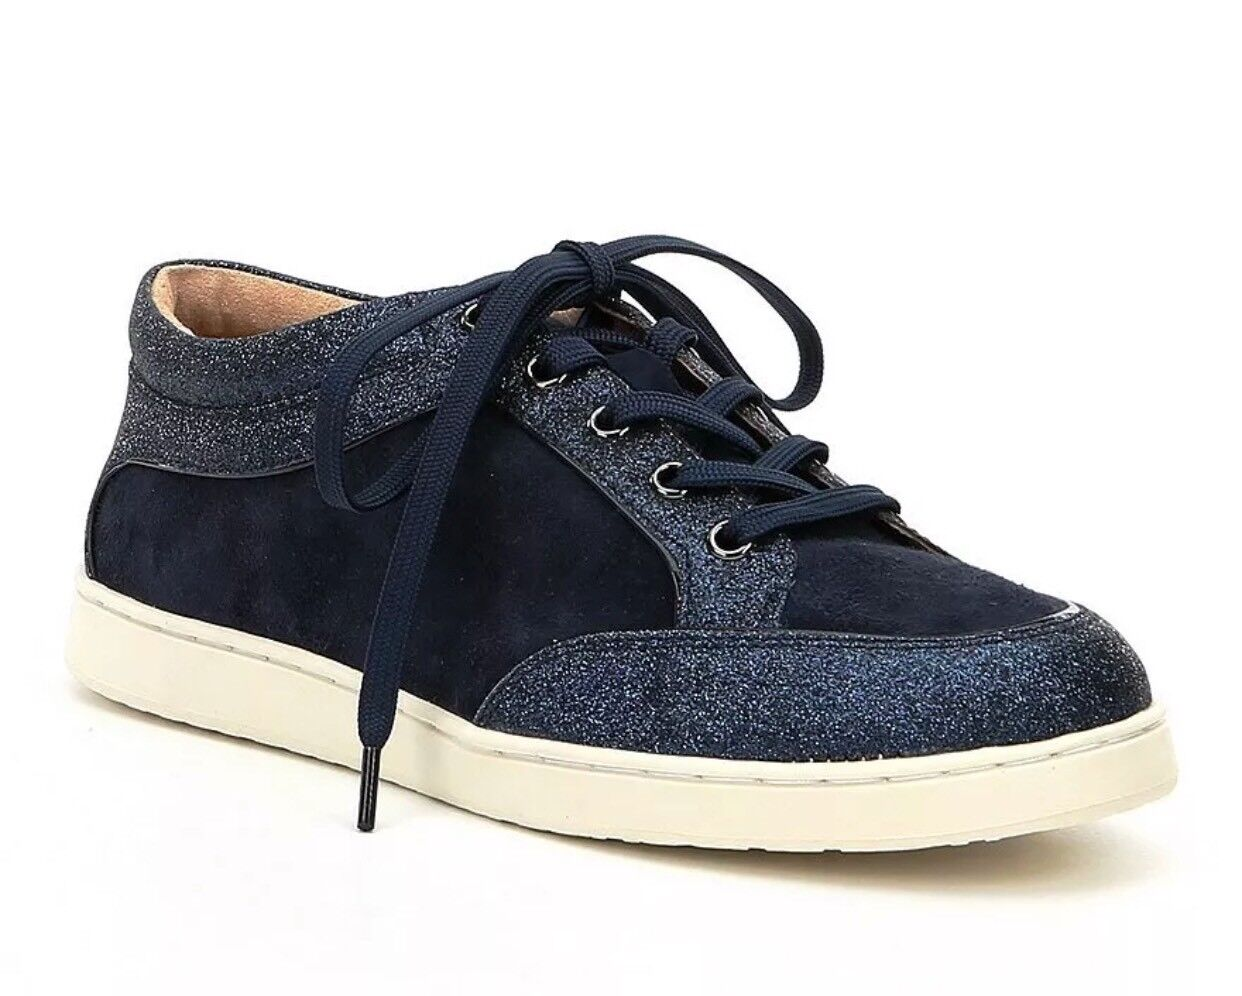 Antonio Melani Alany New Navy Leather Glitter Embellishment Sneakers Size 8.5M